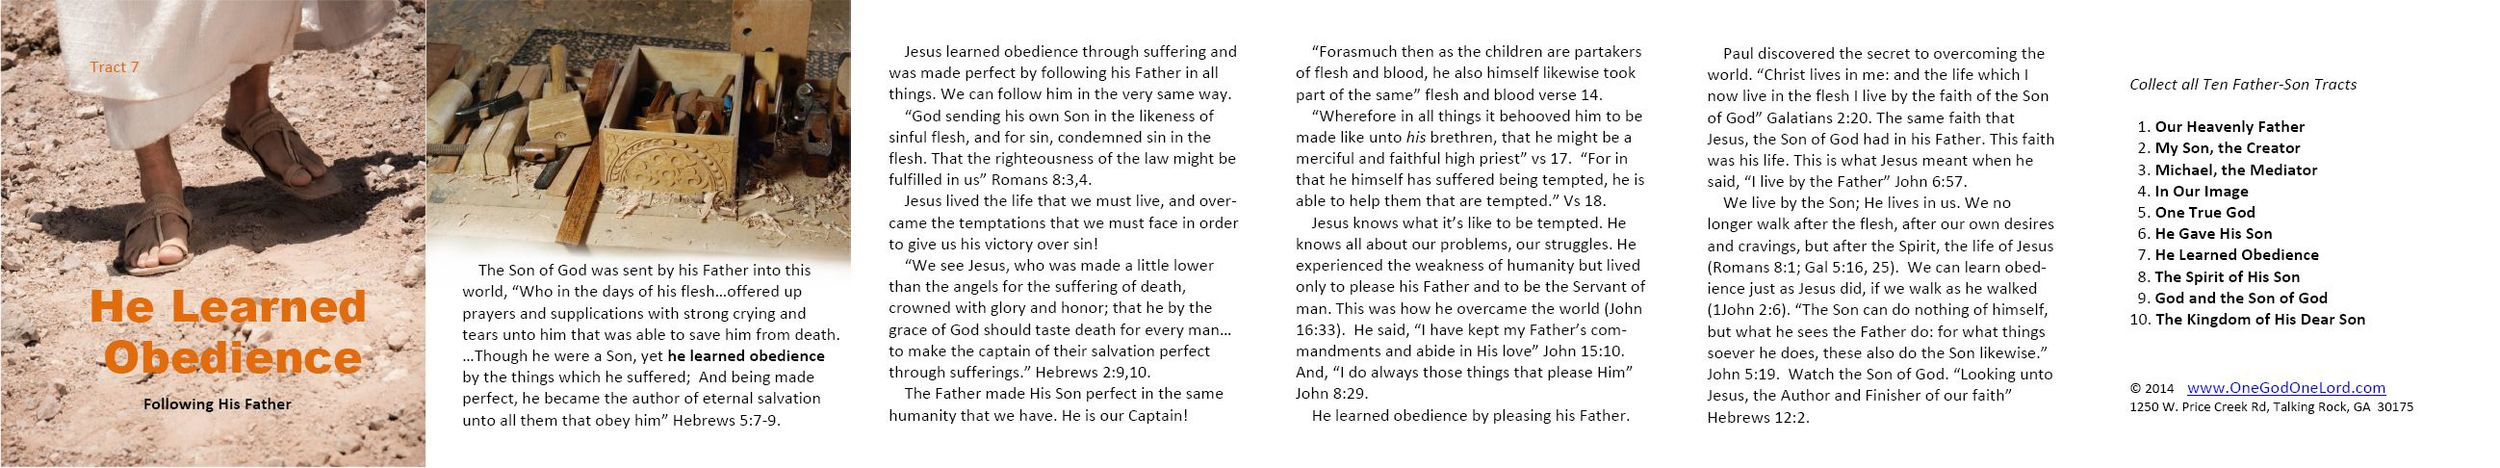 Tract 7 - He Learned Obedience